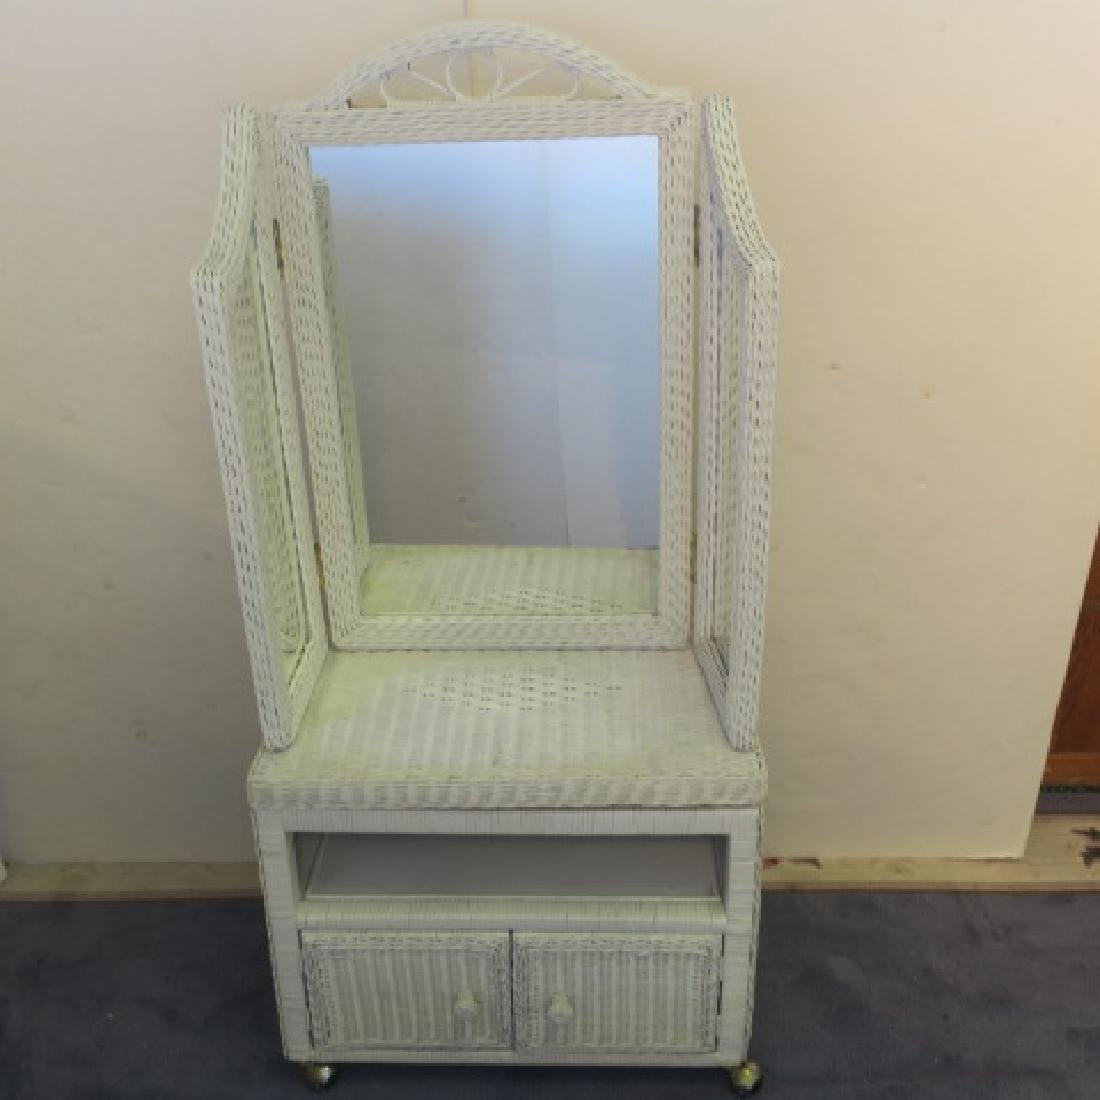 Wicker Rolling TV Stand/ Bench and Trifold Mirror: